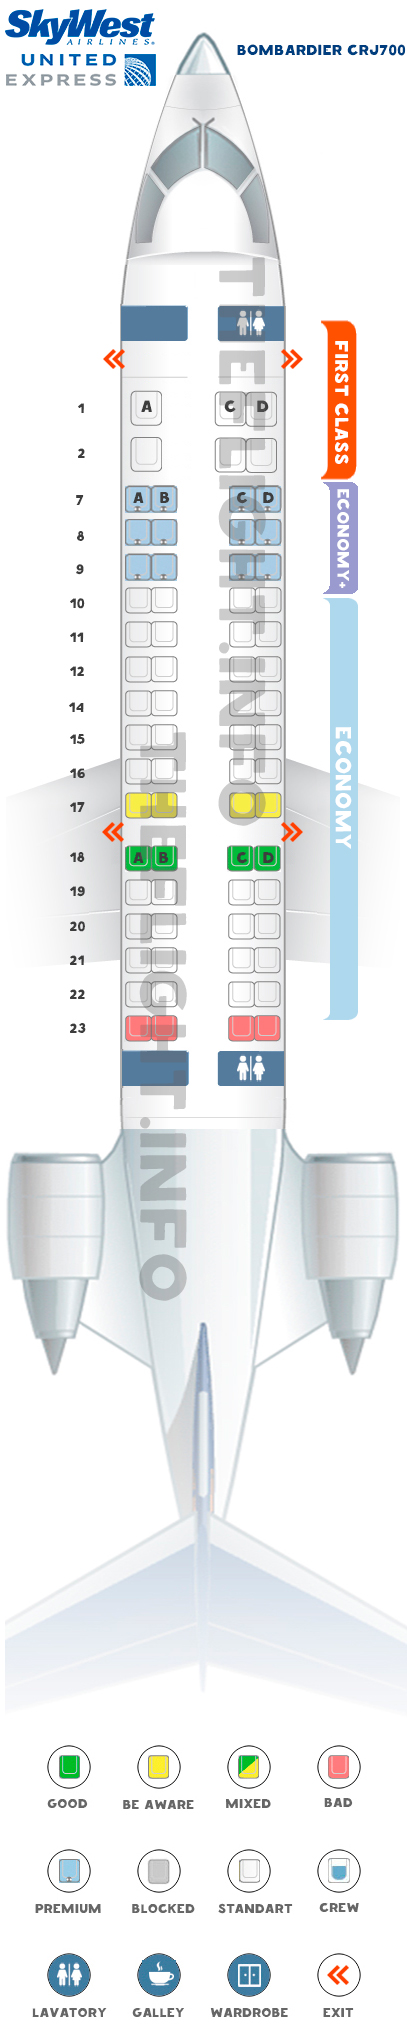 Seat map Bombardier CRJ700 United Express Skywest